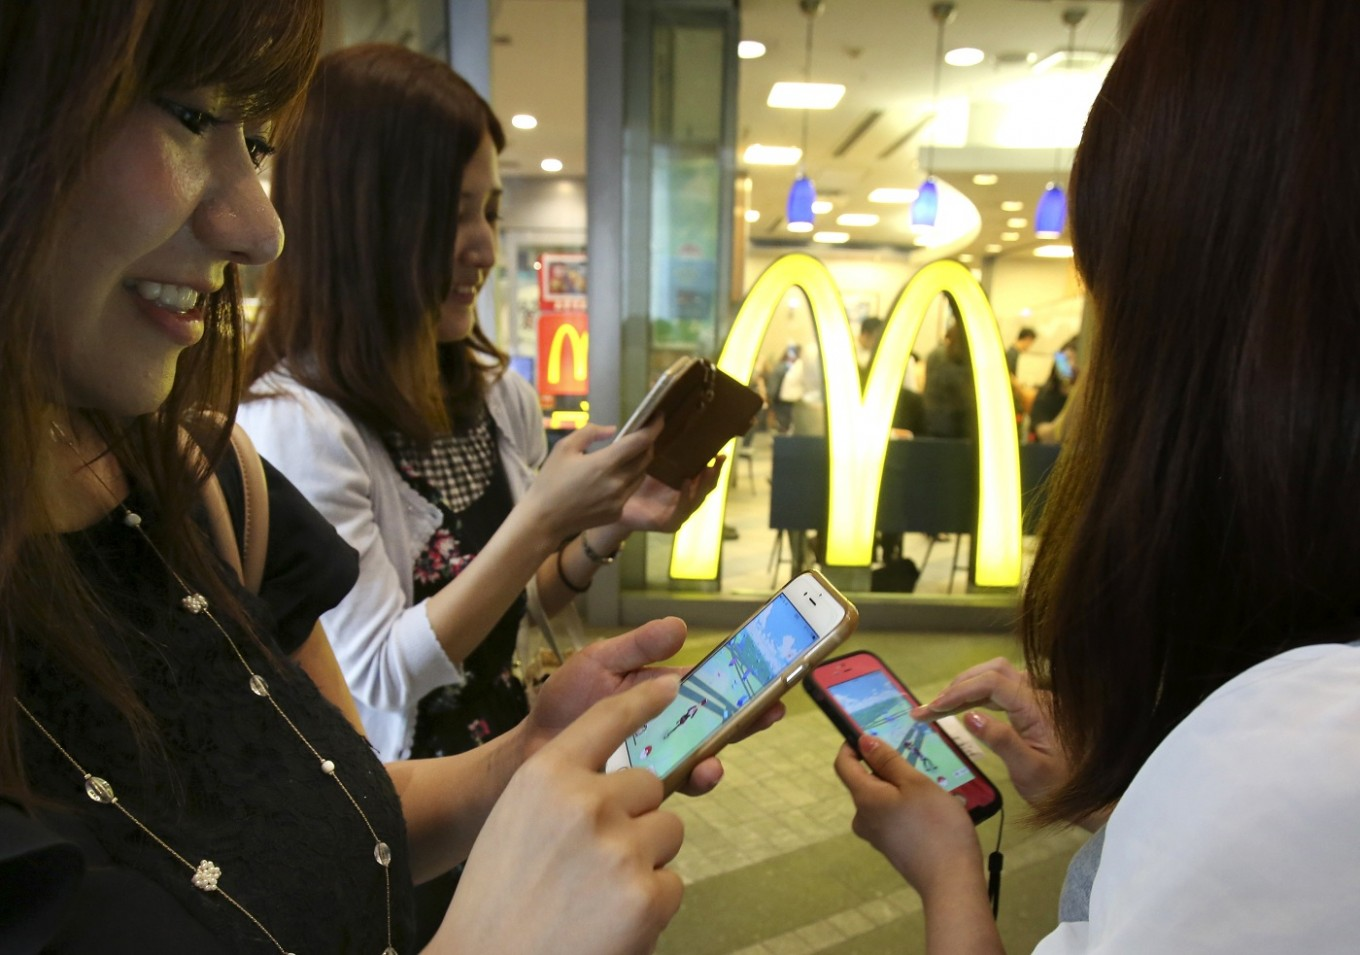 Theft, accidents reported in Japan amid 'Pokemon Go' fever